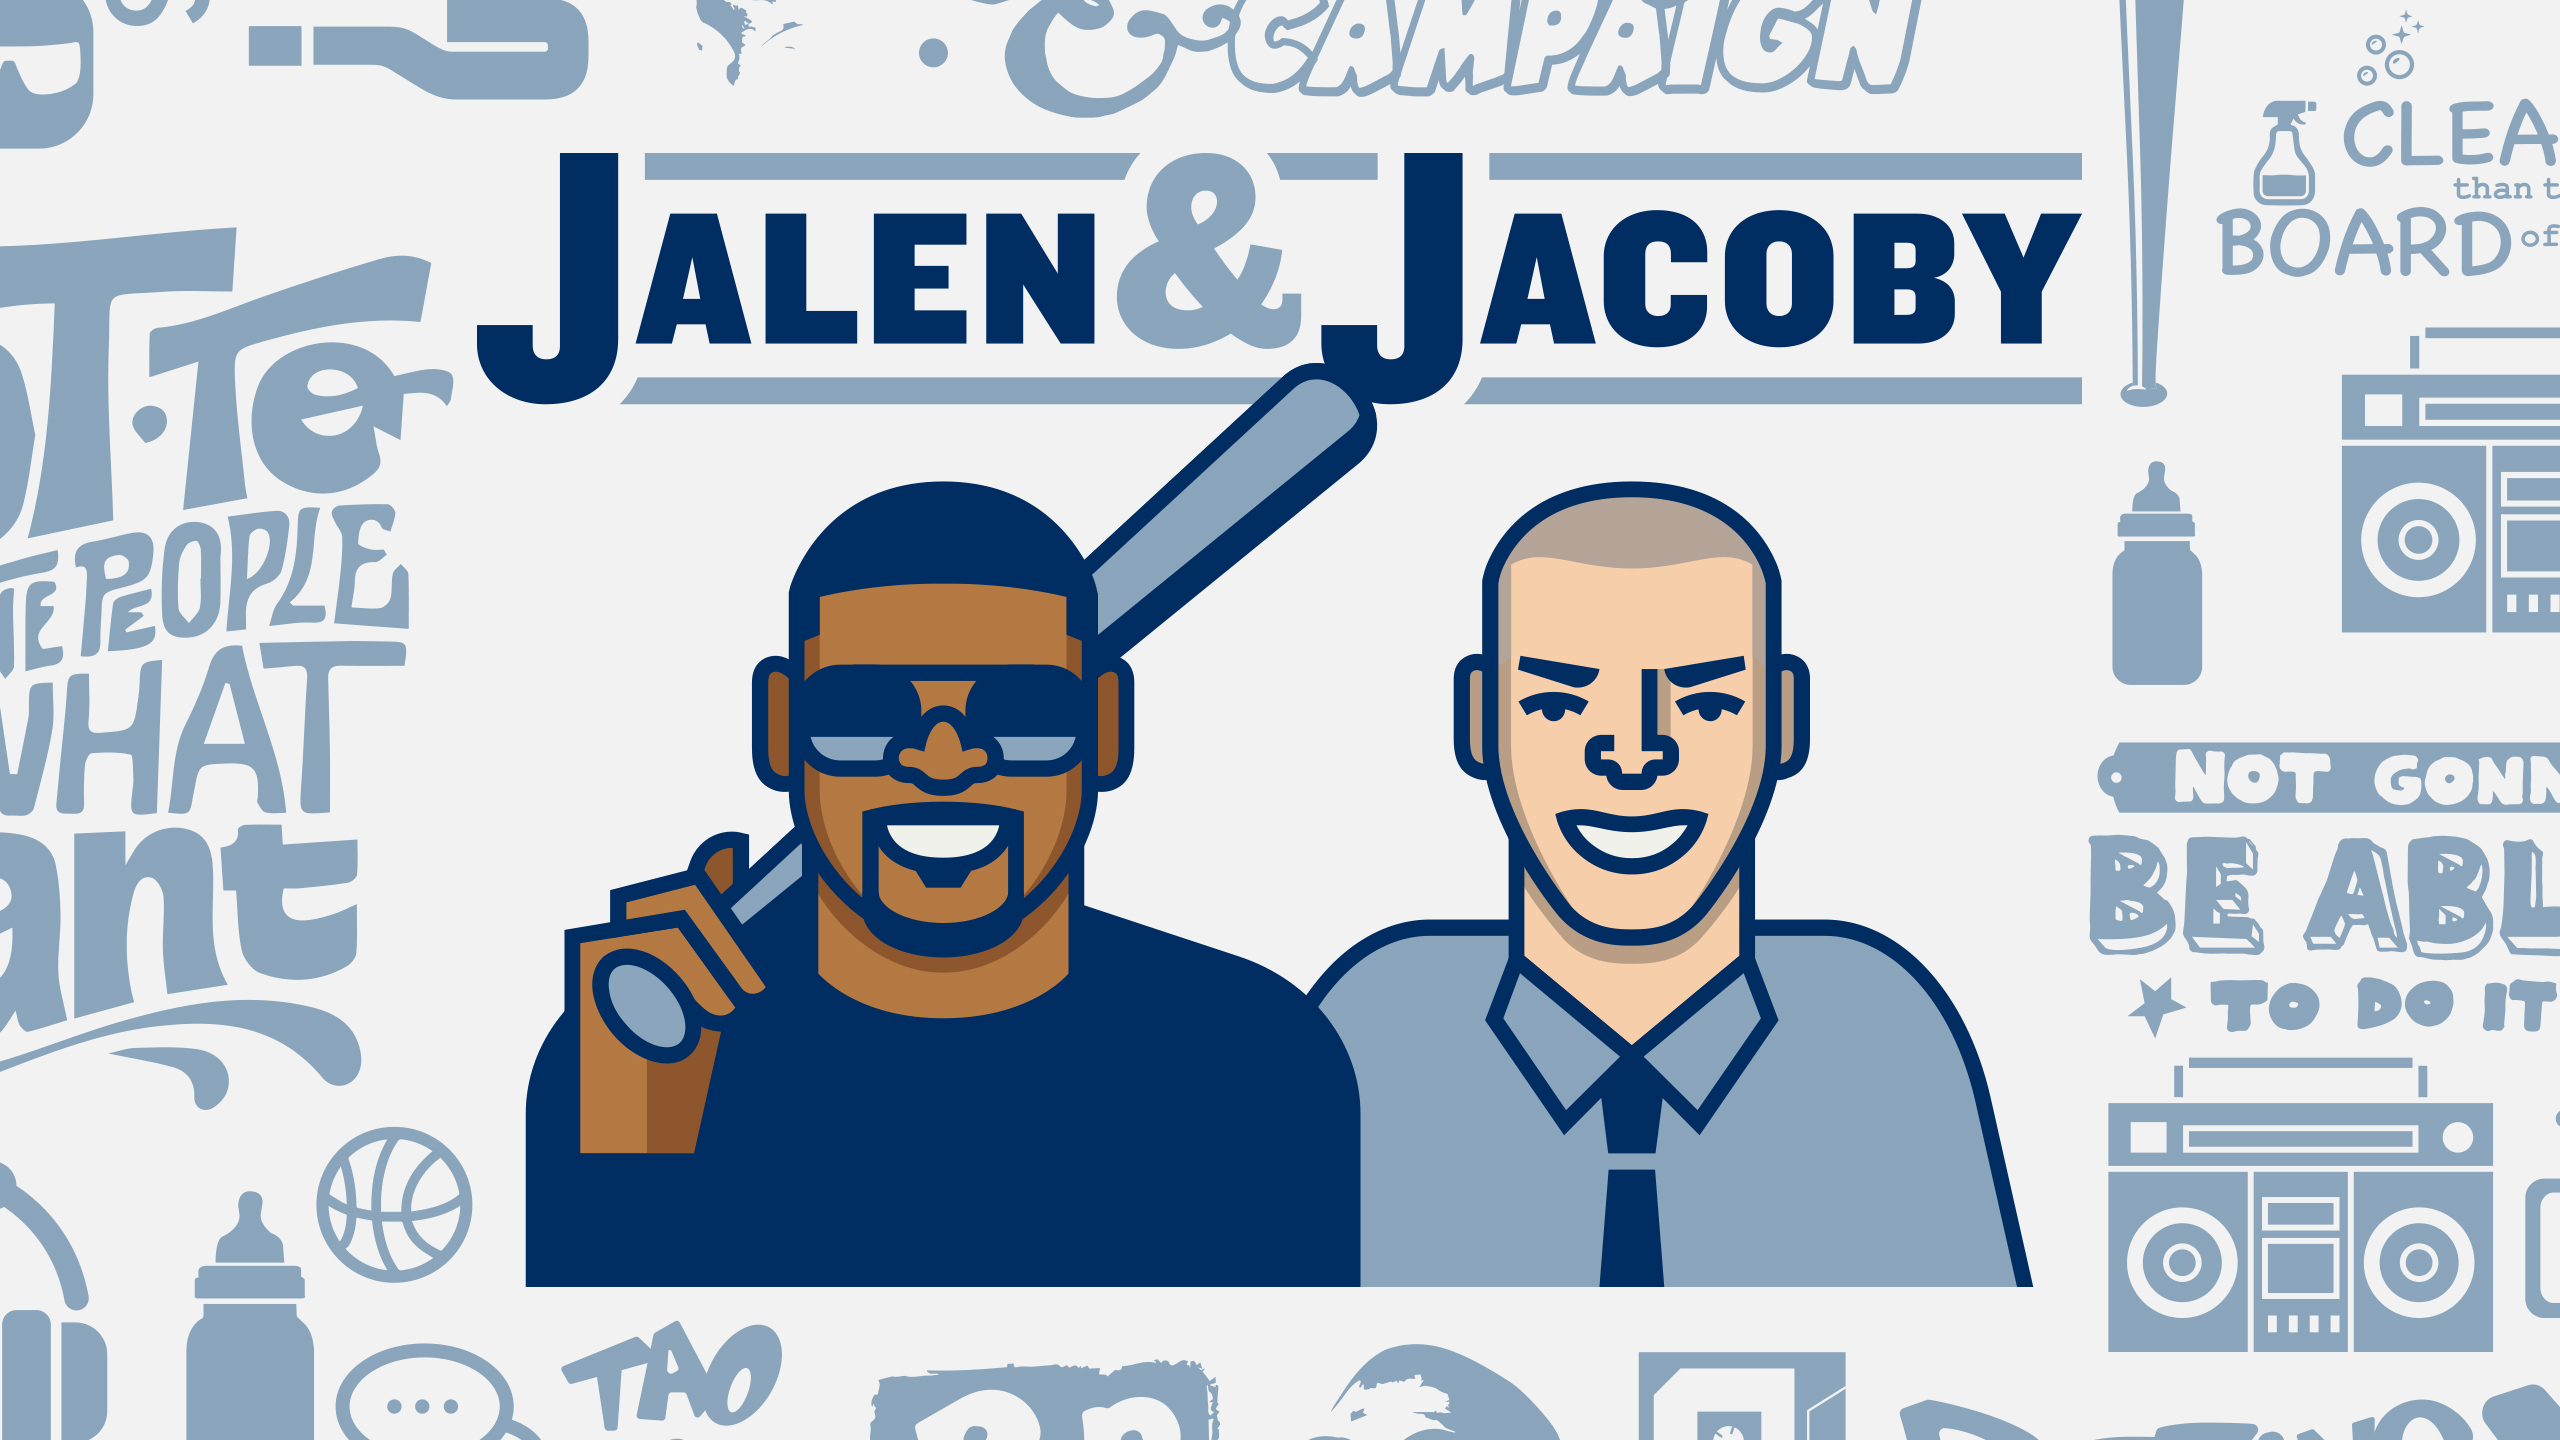 Tue, 9/25 - Jalen & Jacoby